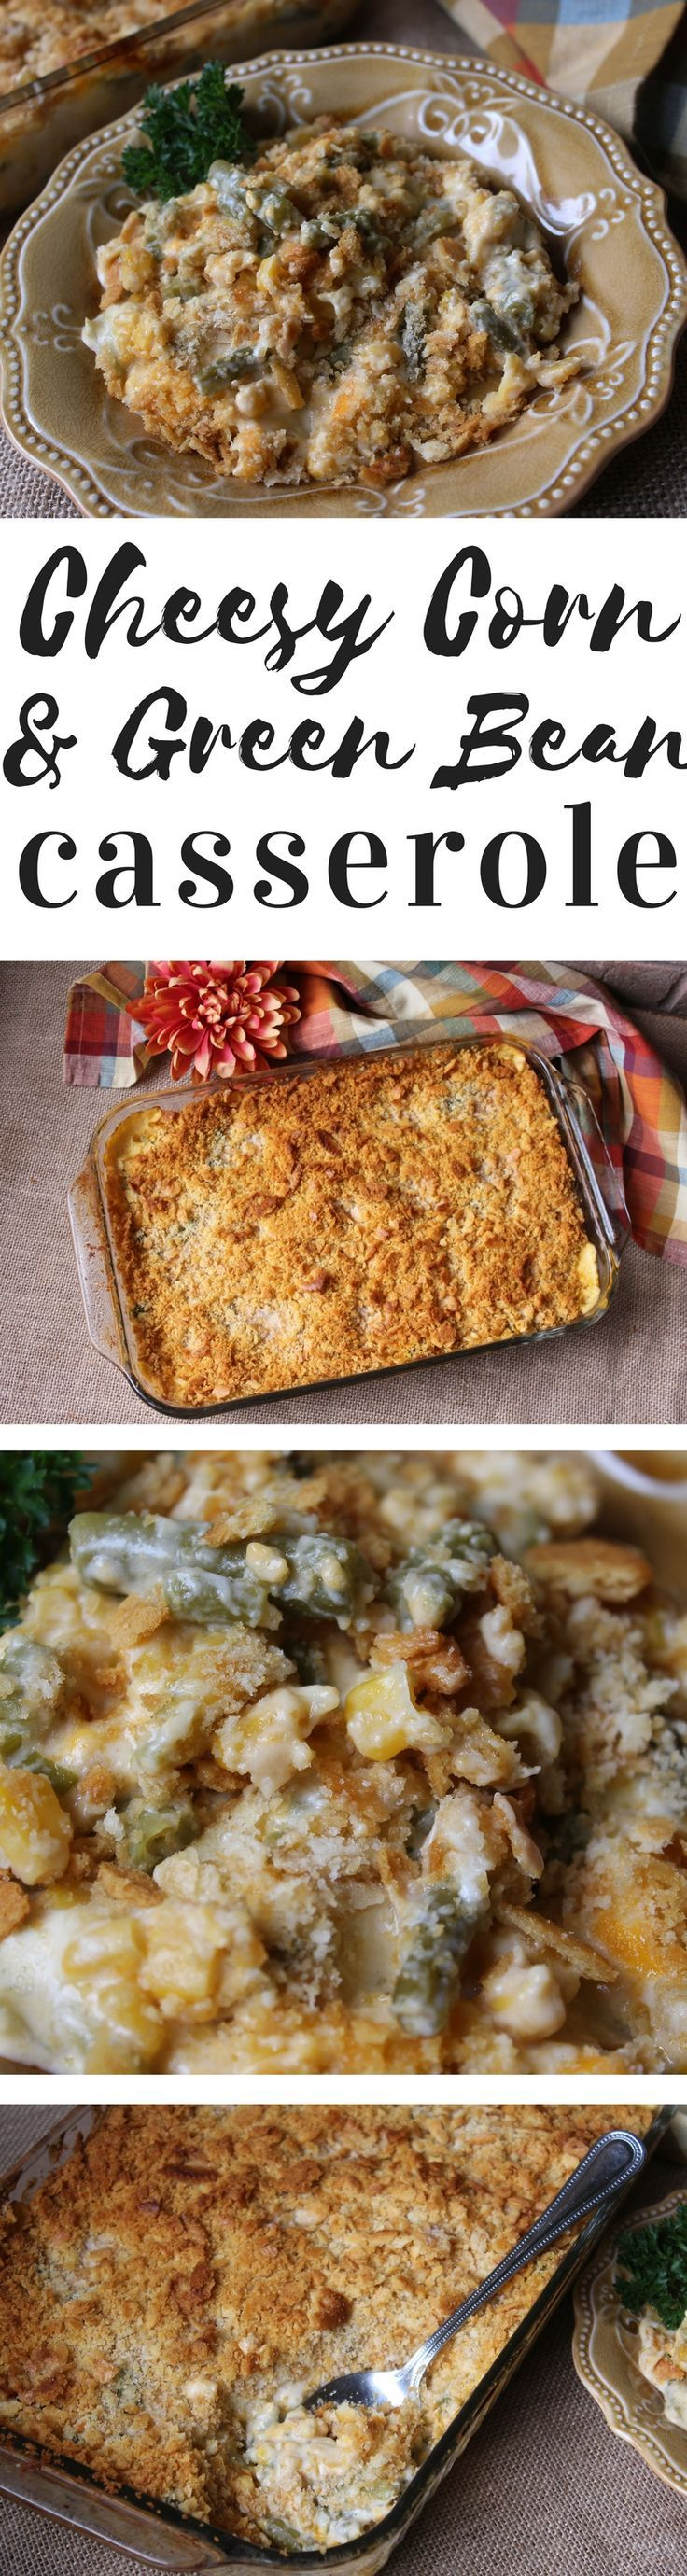 The classic corn casserole meets your favorite green bean casserole to make this combo casserole your newest/yummiest/easiest addition to your Thanksgiving table!